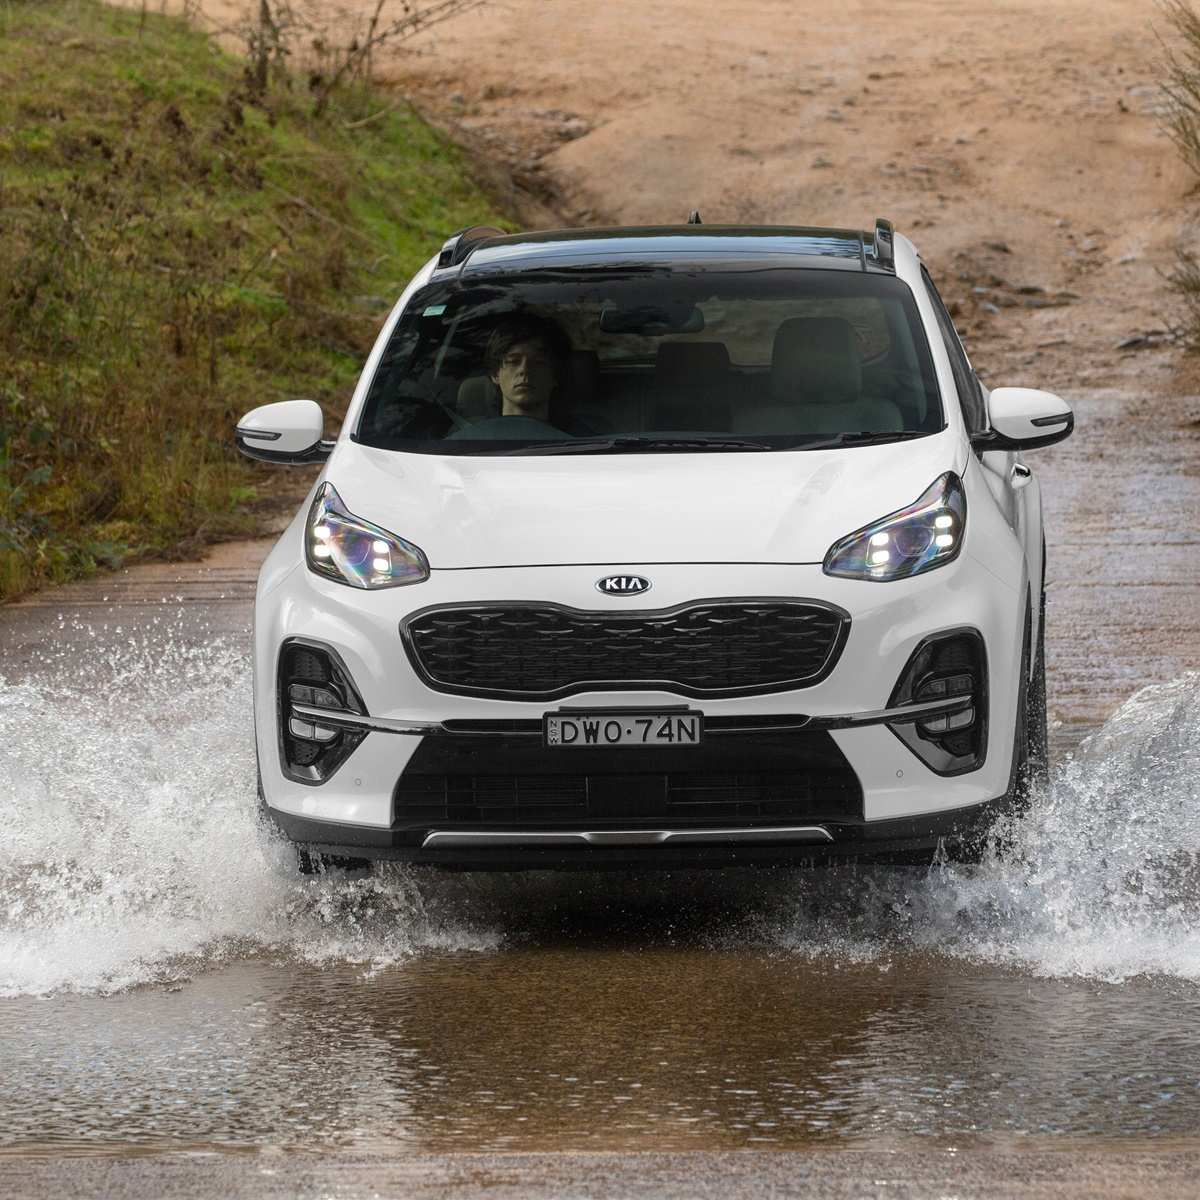 91 The The Kia Sportage Gt Line 2019 Review And Specs Wallpaper with The Kia Sportage Gt Line 2019 Review And Specs